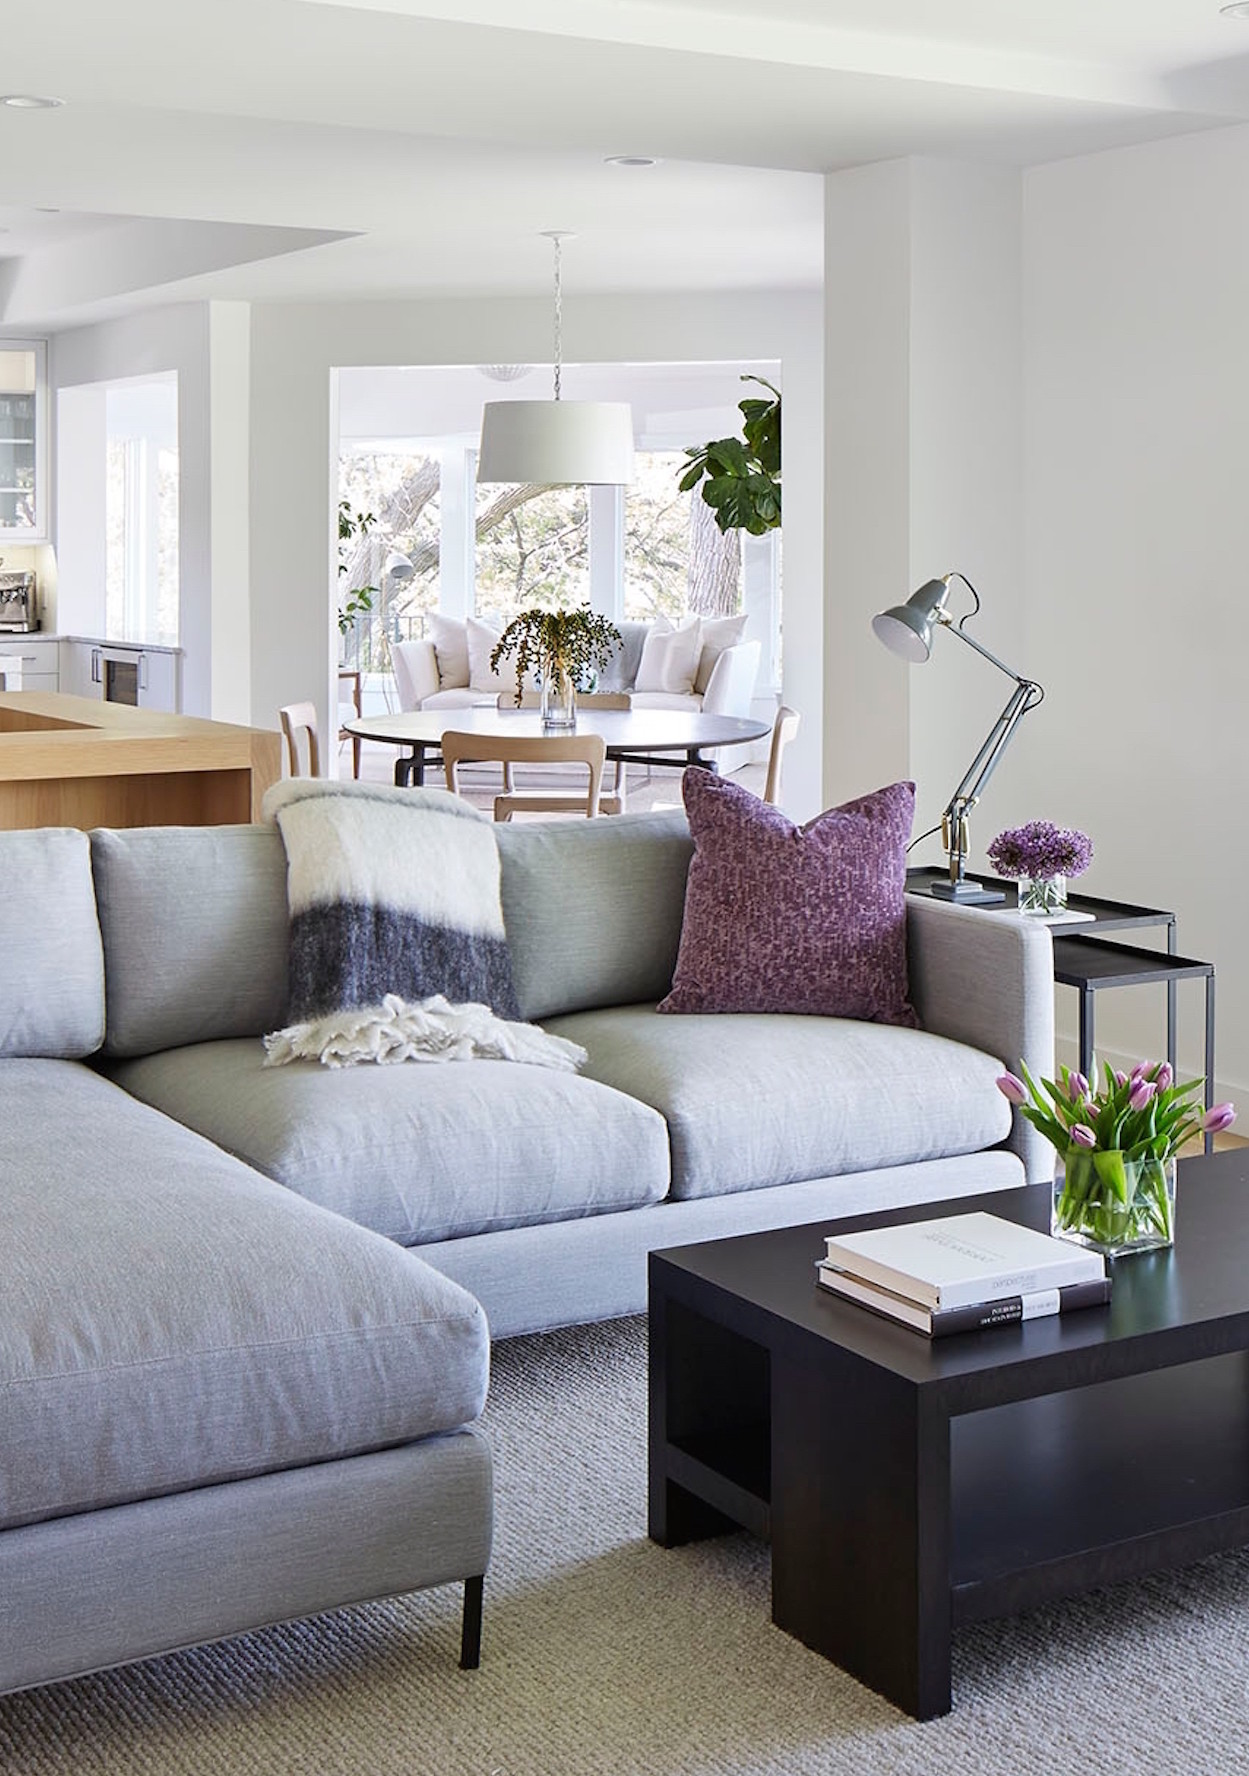 Decorate Small Living Room: 10 Rules To Keep In Mind When Decorating A Living Room